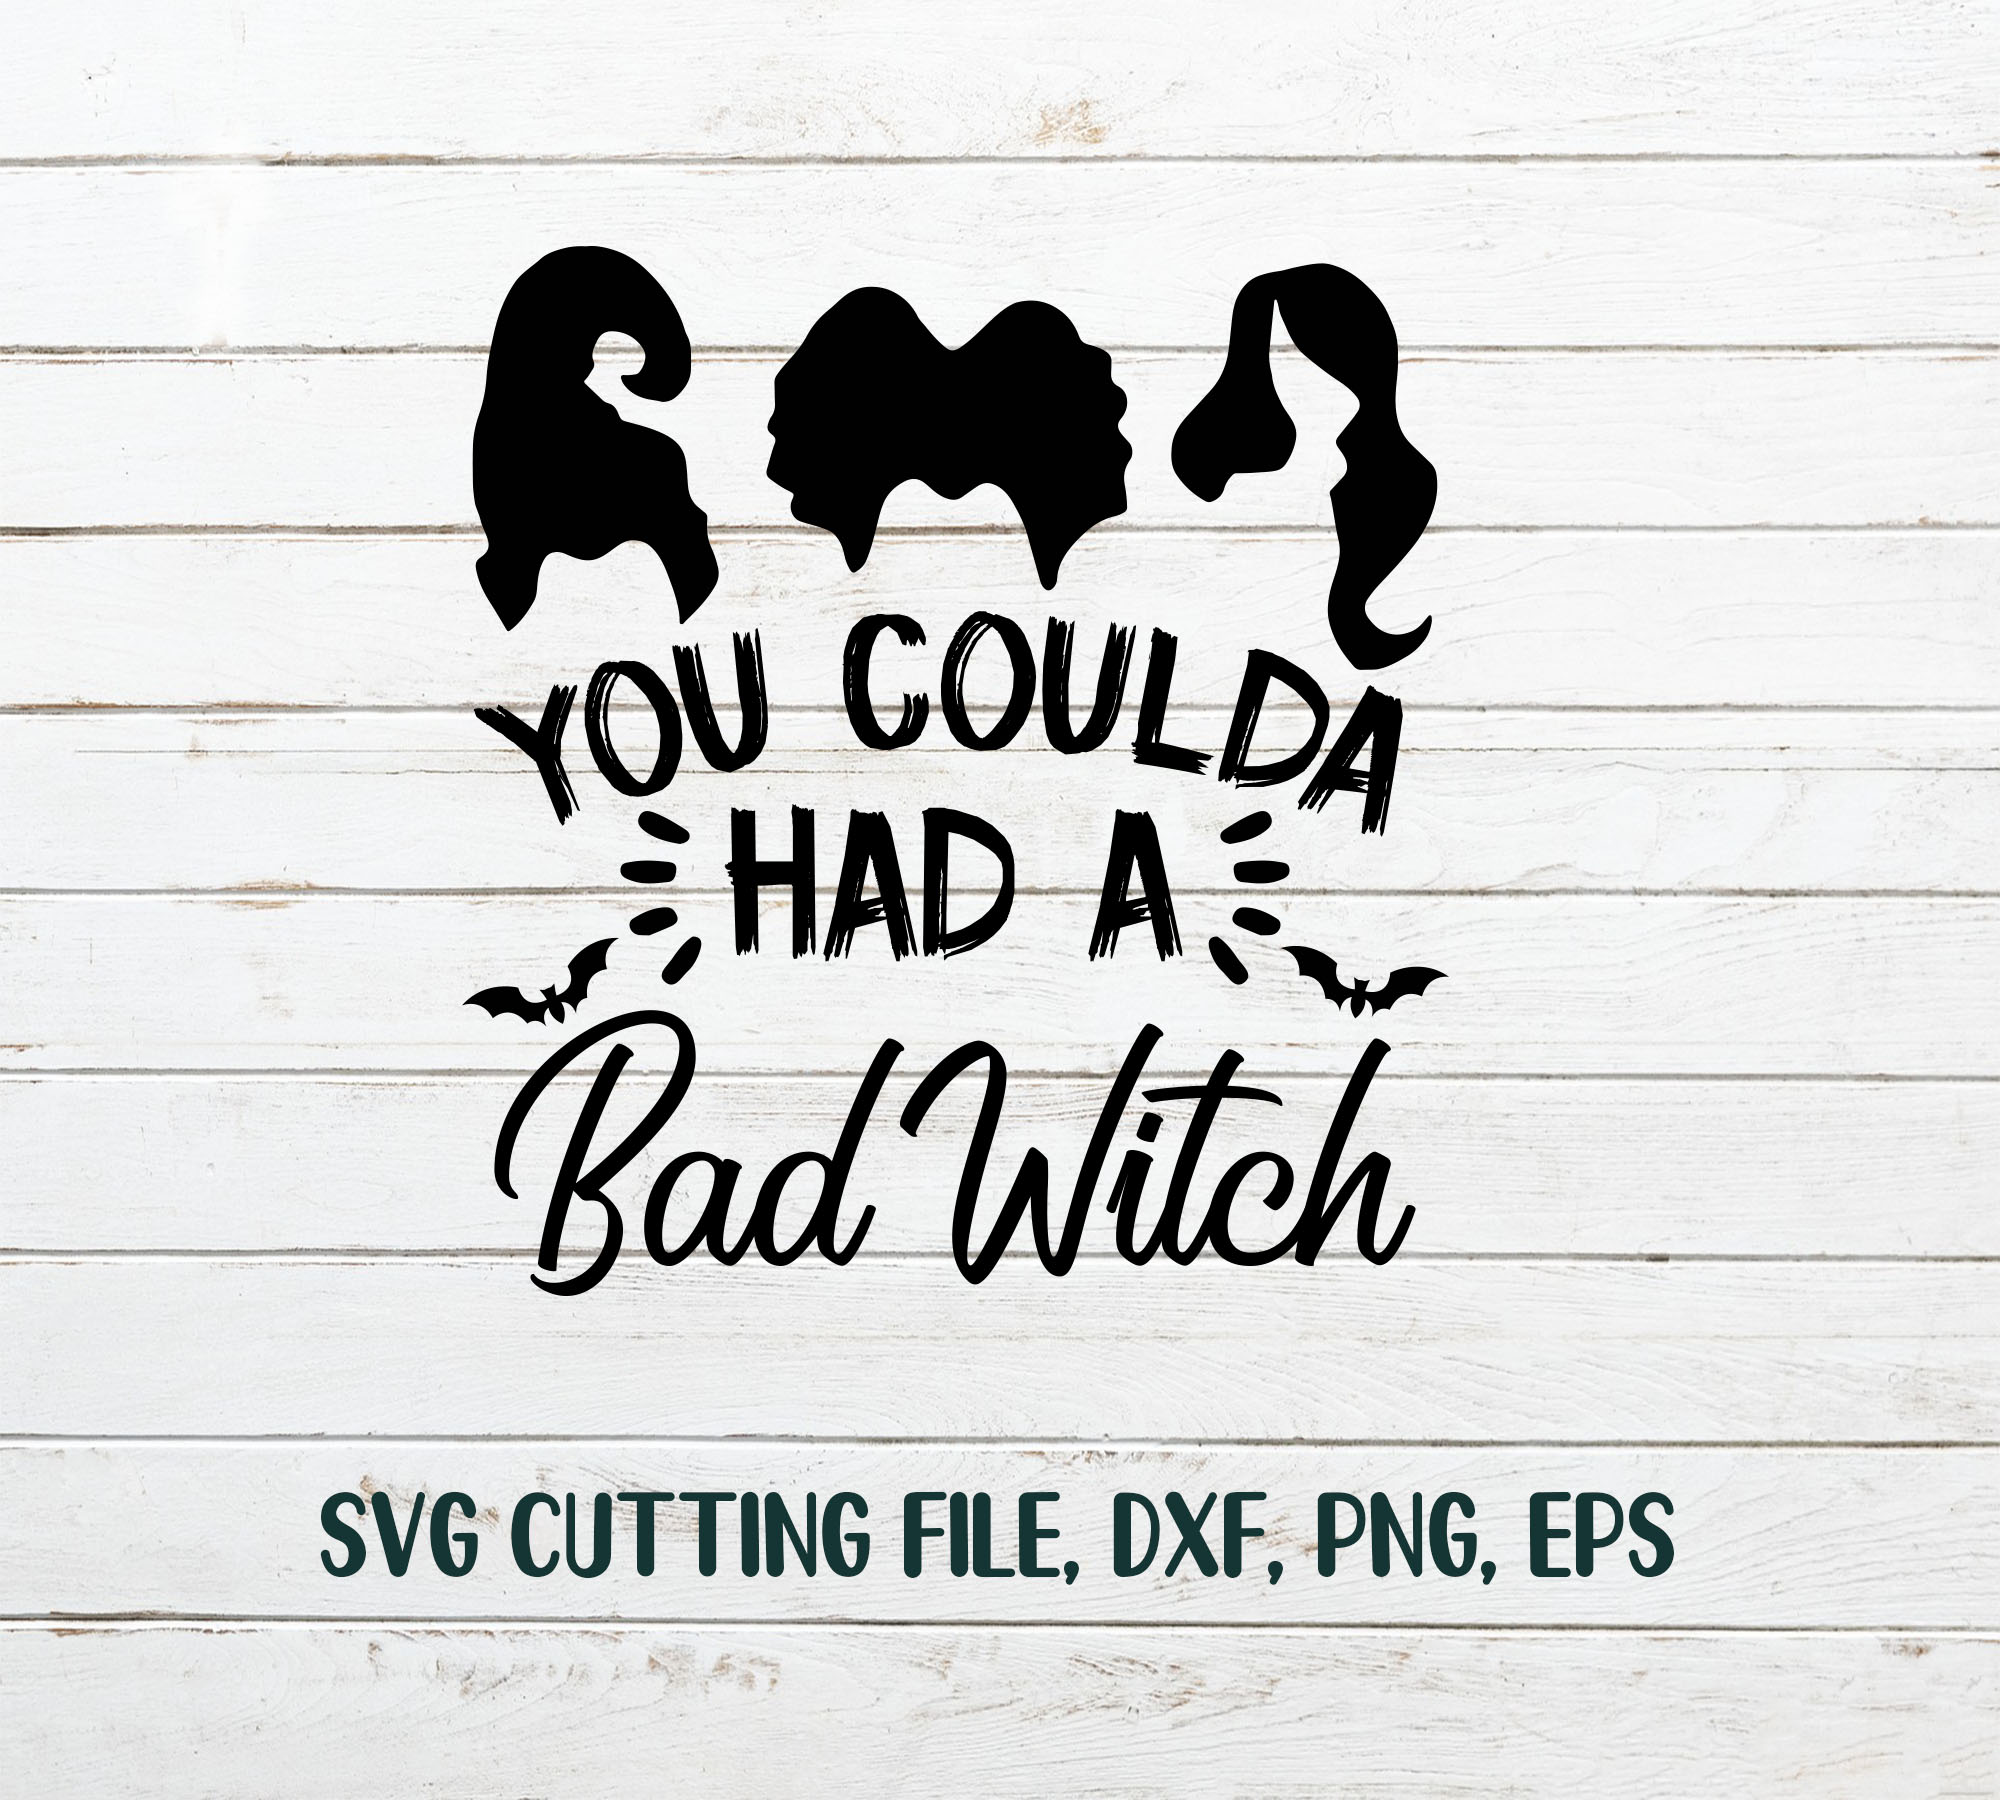 i will make svg cutting files for cricut design